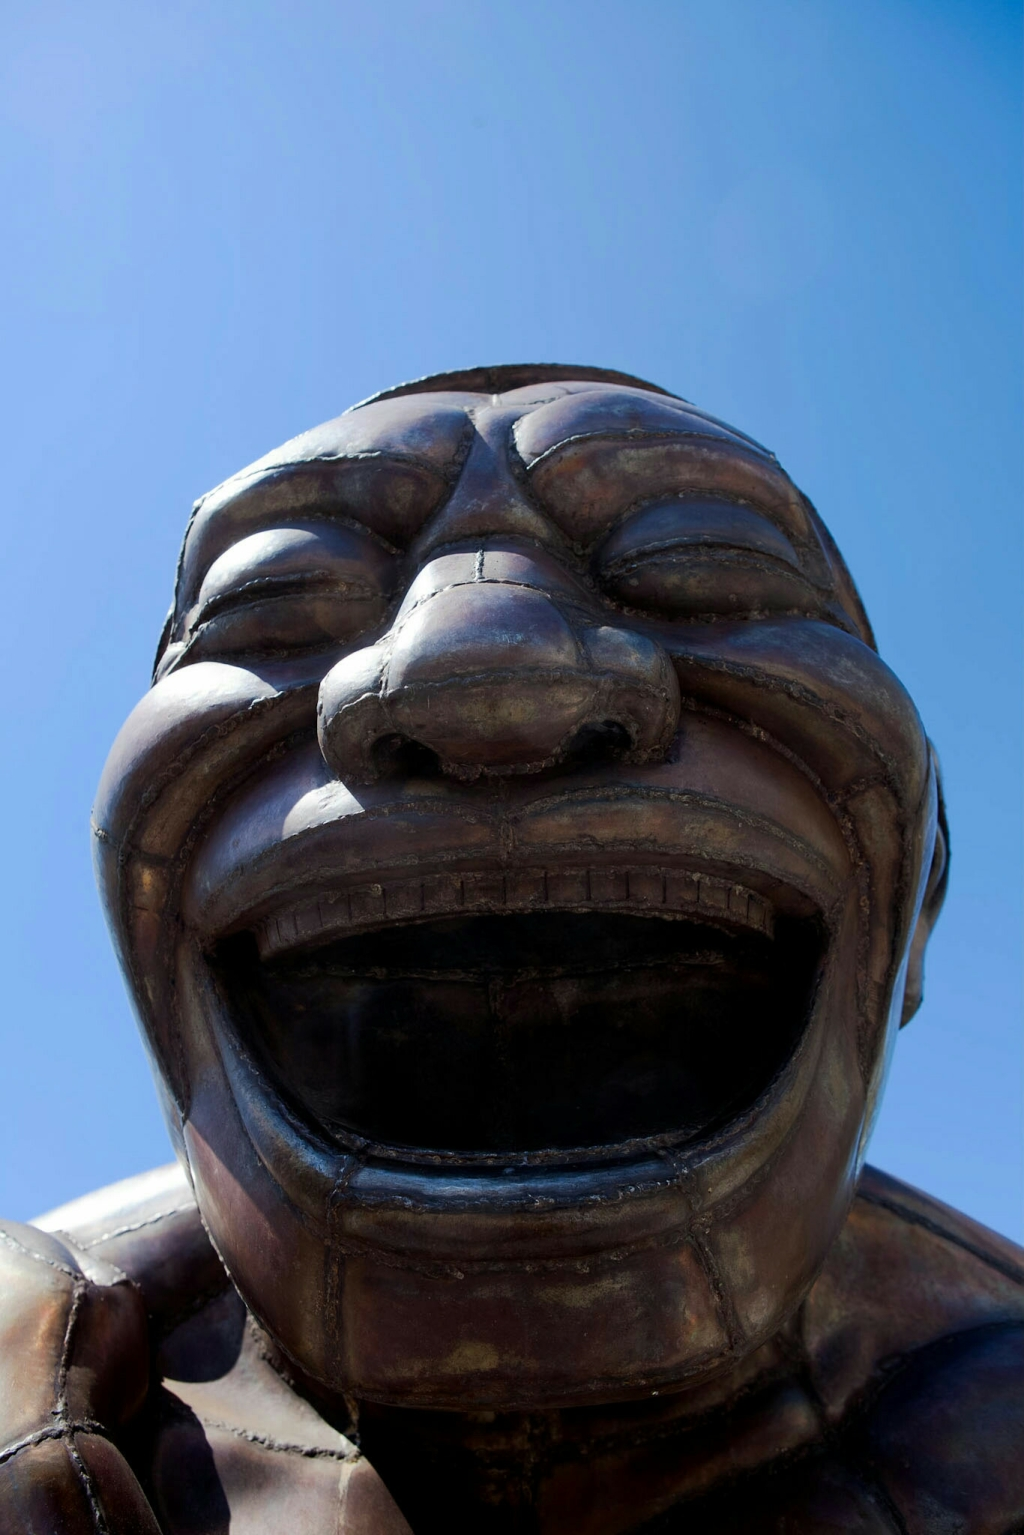 A-maze-ing Laughter Sculpture by Yue Minjun Morton Park Vancouver British Columbia, Canada